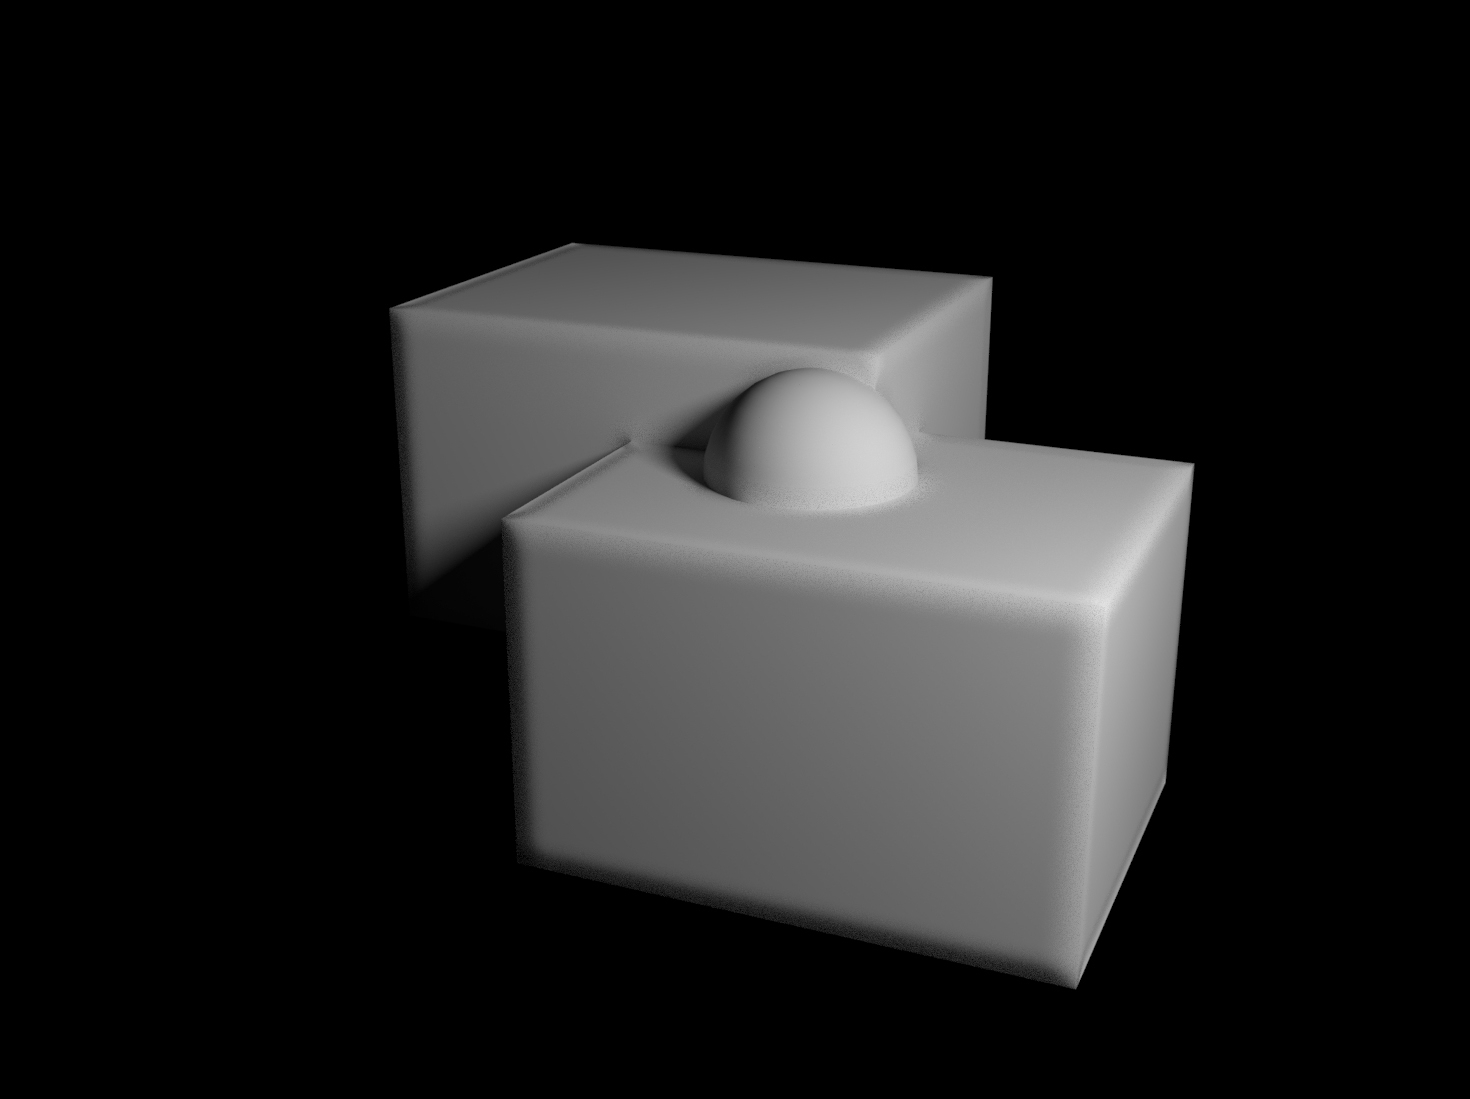 Round Edge shaders in render engines (is MODO the only good